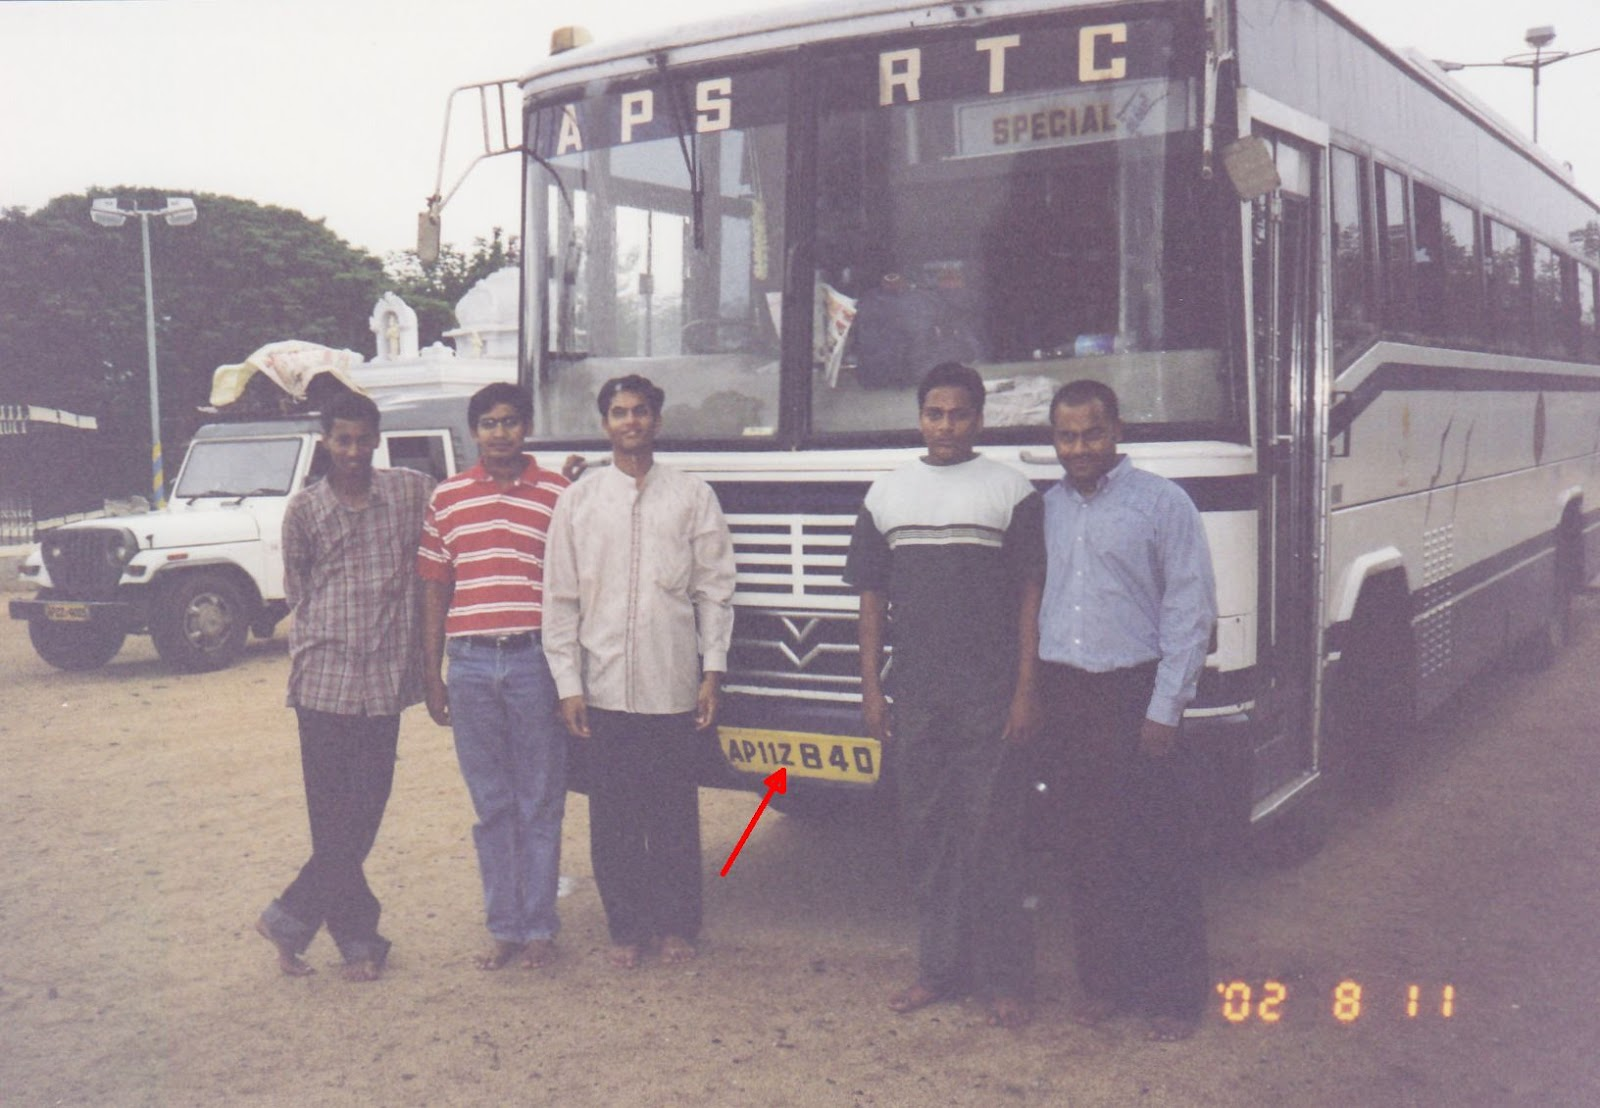 """Raghu's column!: """"Z"""" In Vehicle Registration Numbers stands for on andhra marriage, andhra vantalu, andhra nellore, andhra dishes, andhra capital, andhra rayalaseema and map, andhra india, andhra map coordinates, andhra style cabbage curry, andhra state map, andhra cyclone, andhra district map, andhra tourism, andhra temple, andhra food, andhra snacks, andhra telugu, andhra district populations,"""